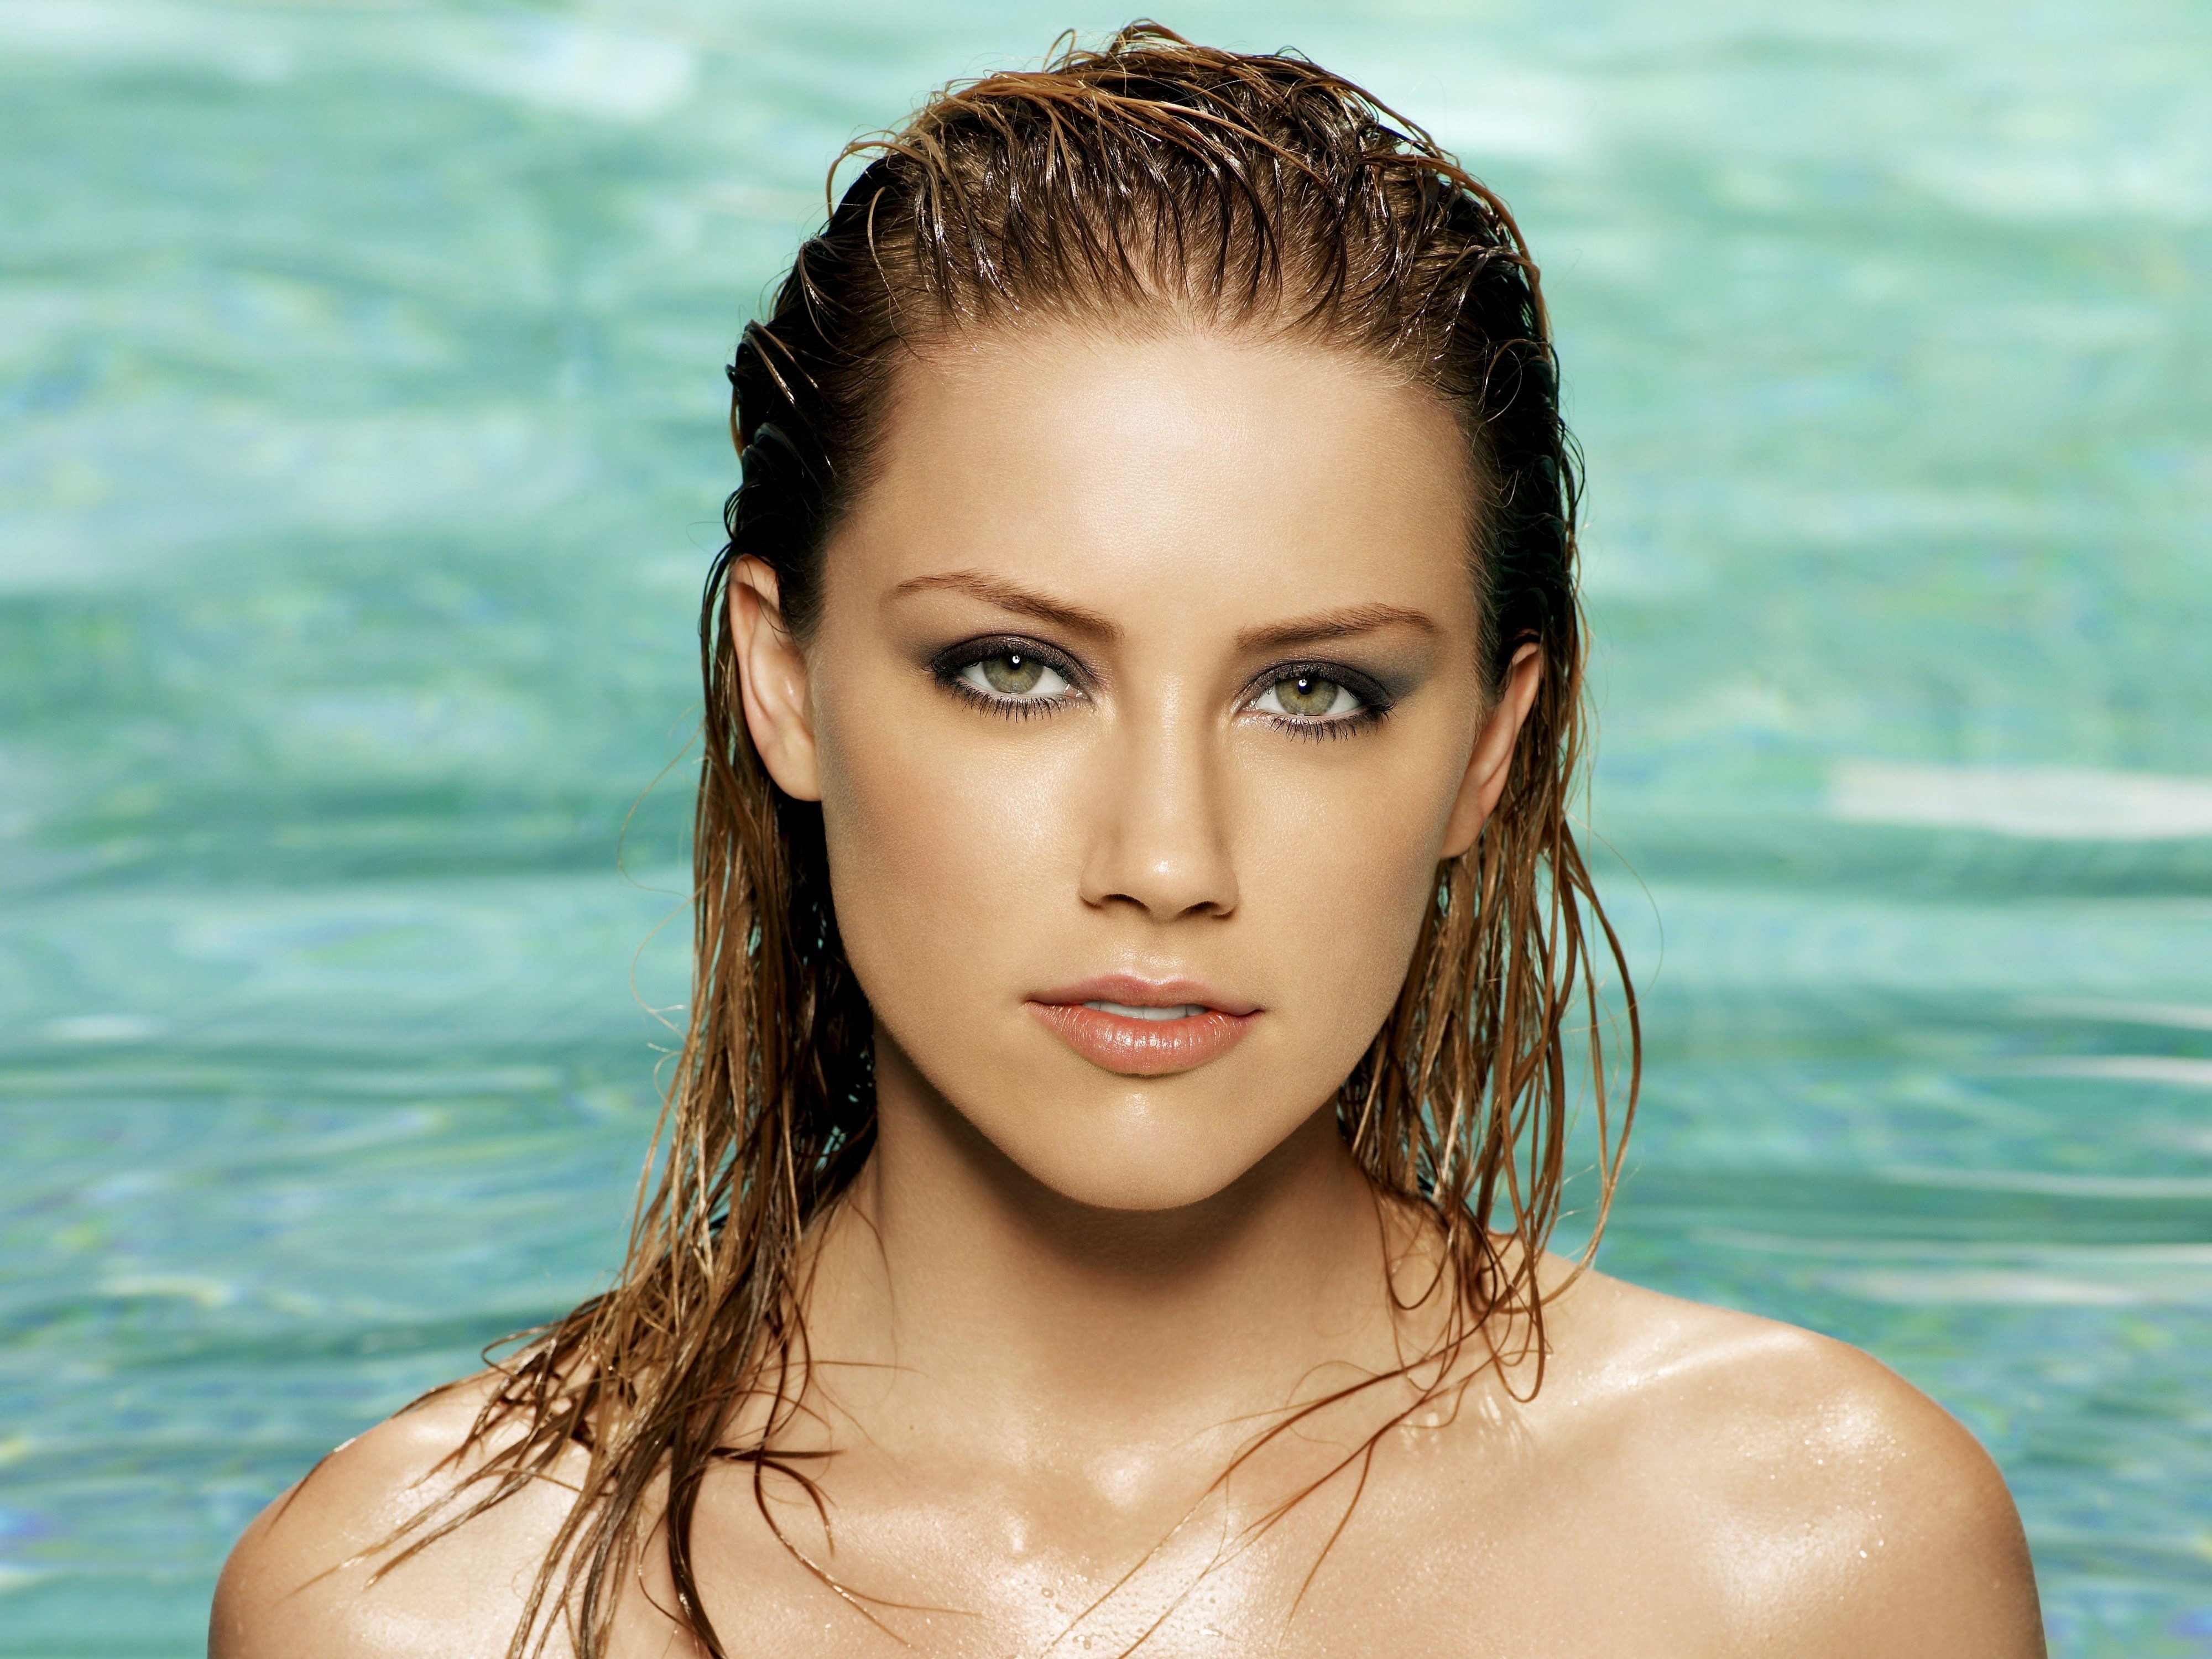 woman Actress models wet HD Wallpaper